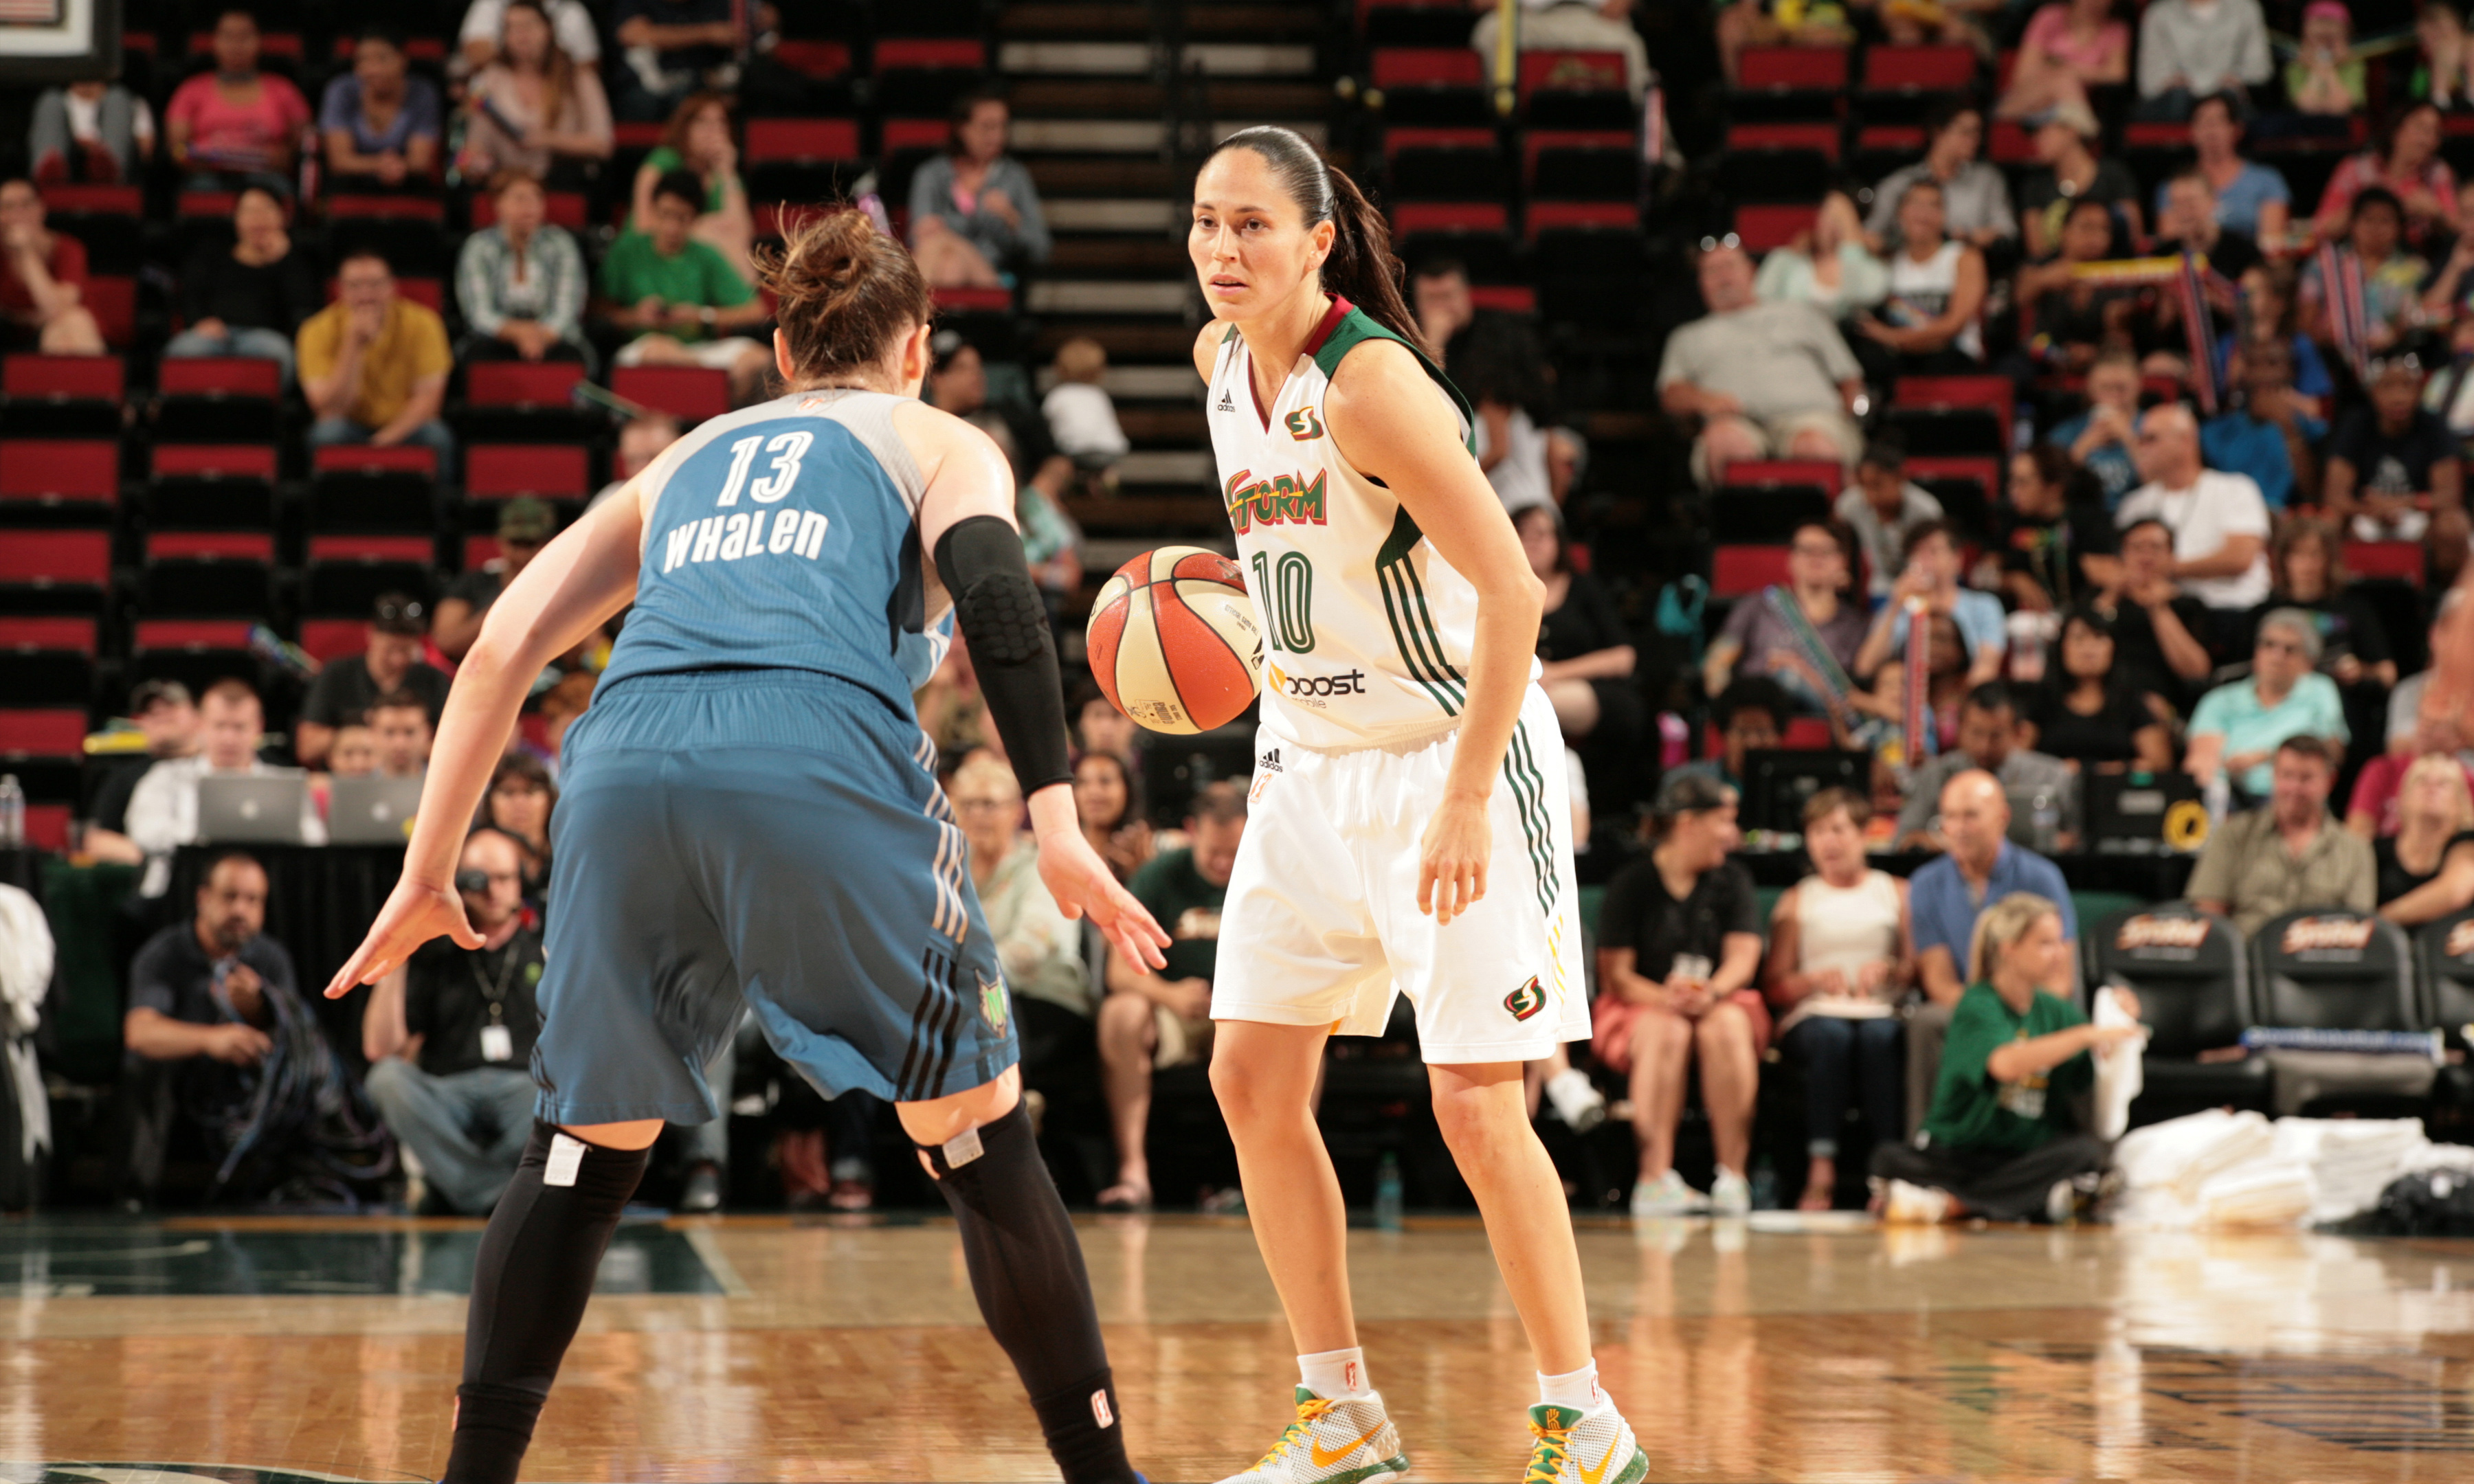 Storm veteran guard Sue Bird did her best to lead her team to a win, but ultimately fell short. Bird scored 16 points to go with her four rebounds and five assists.